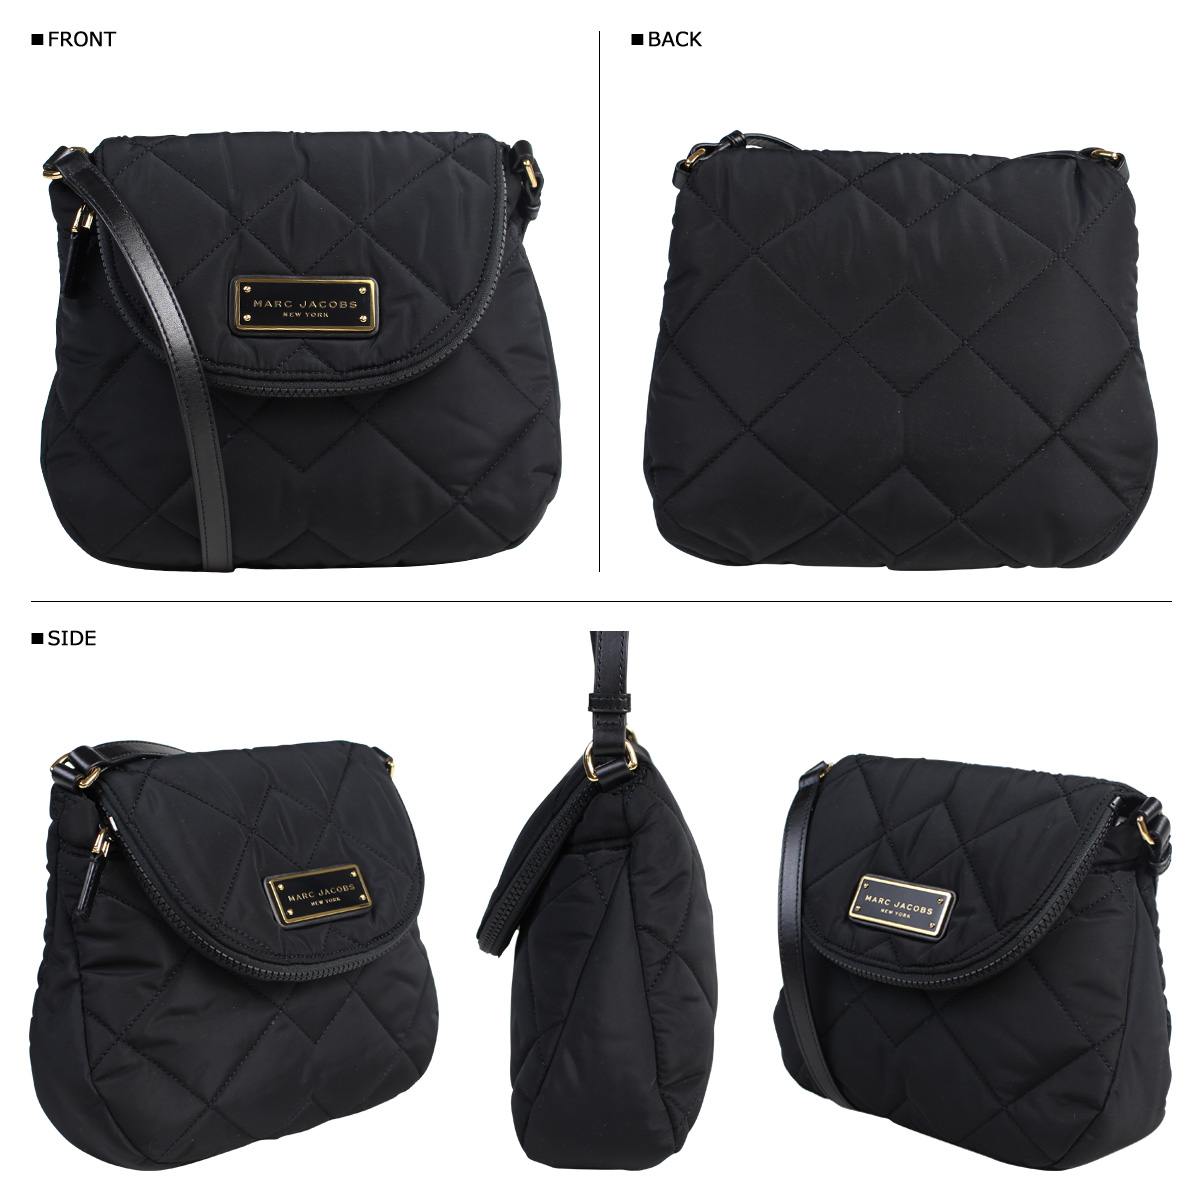 87d5400a8c0d Product explanation  arrival ♪ long-awaited an attention item of mark Jacobs   ・A popular shoulder bag comes up from mark Jacobs.